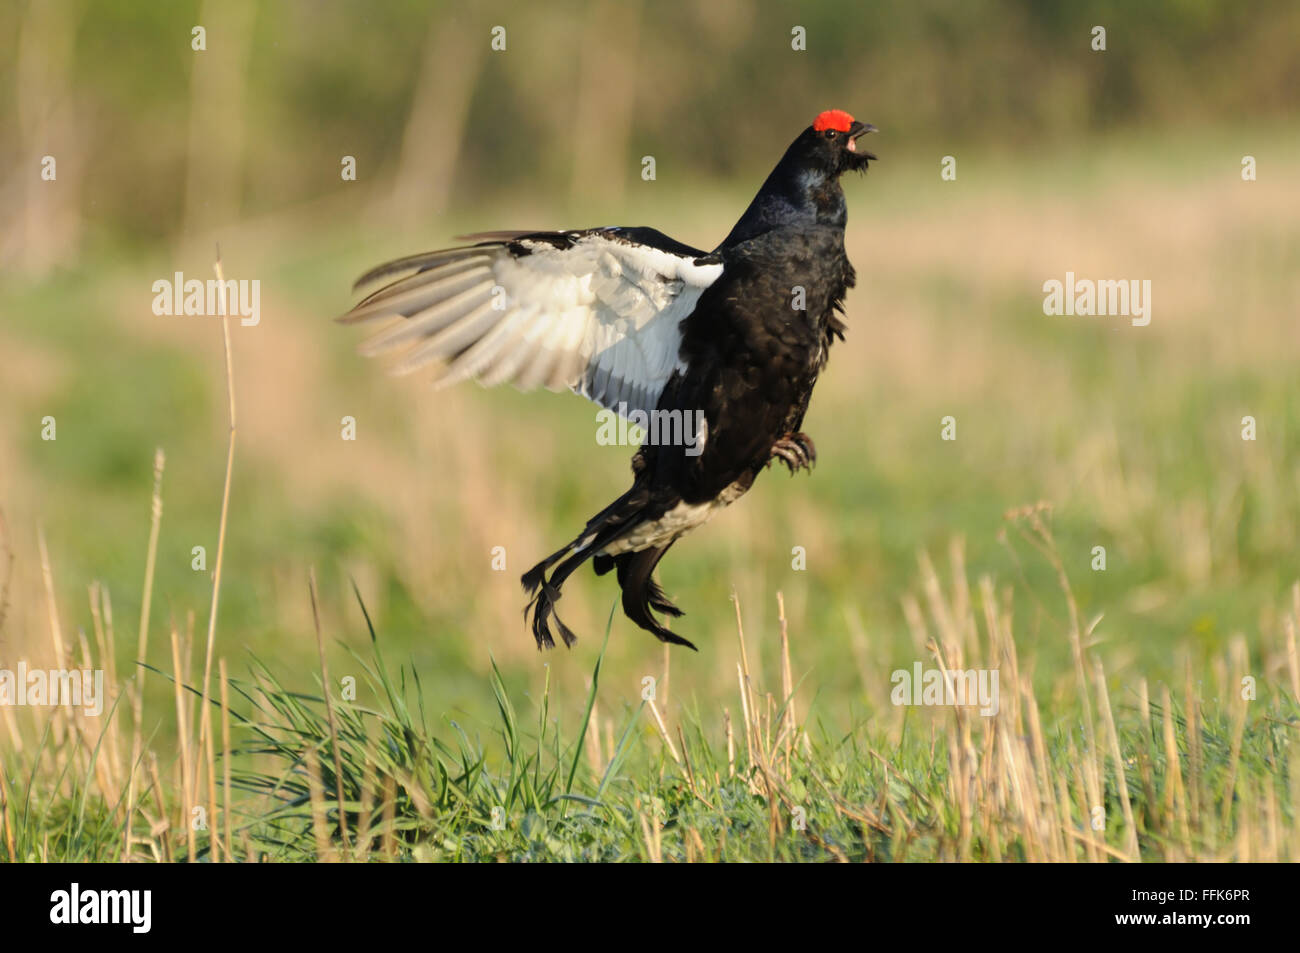 Mating call of jumping male Black grouse (Tetrao tetrix) early morning. Moscow region, Russia - Stock Image